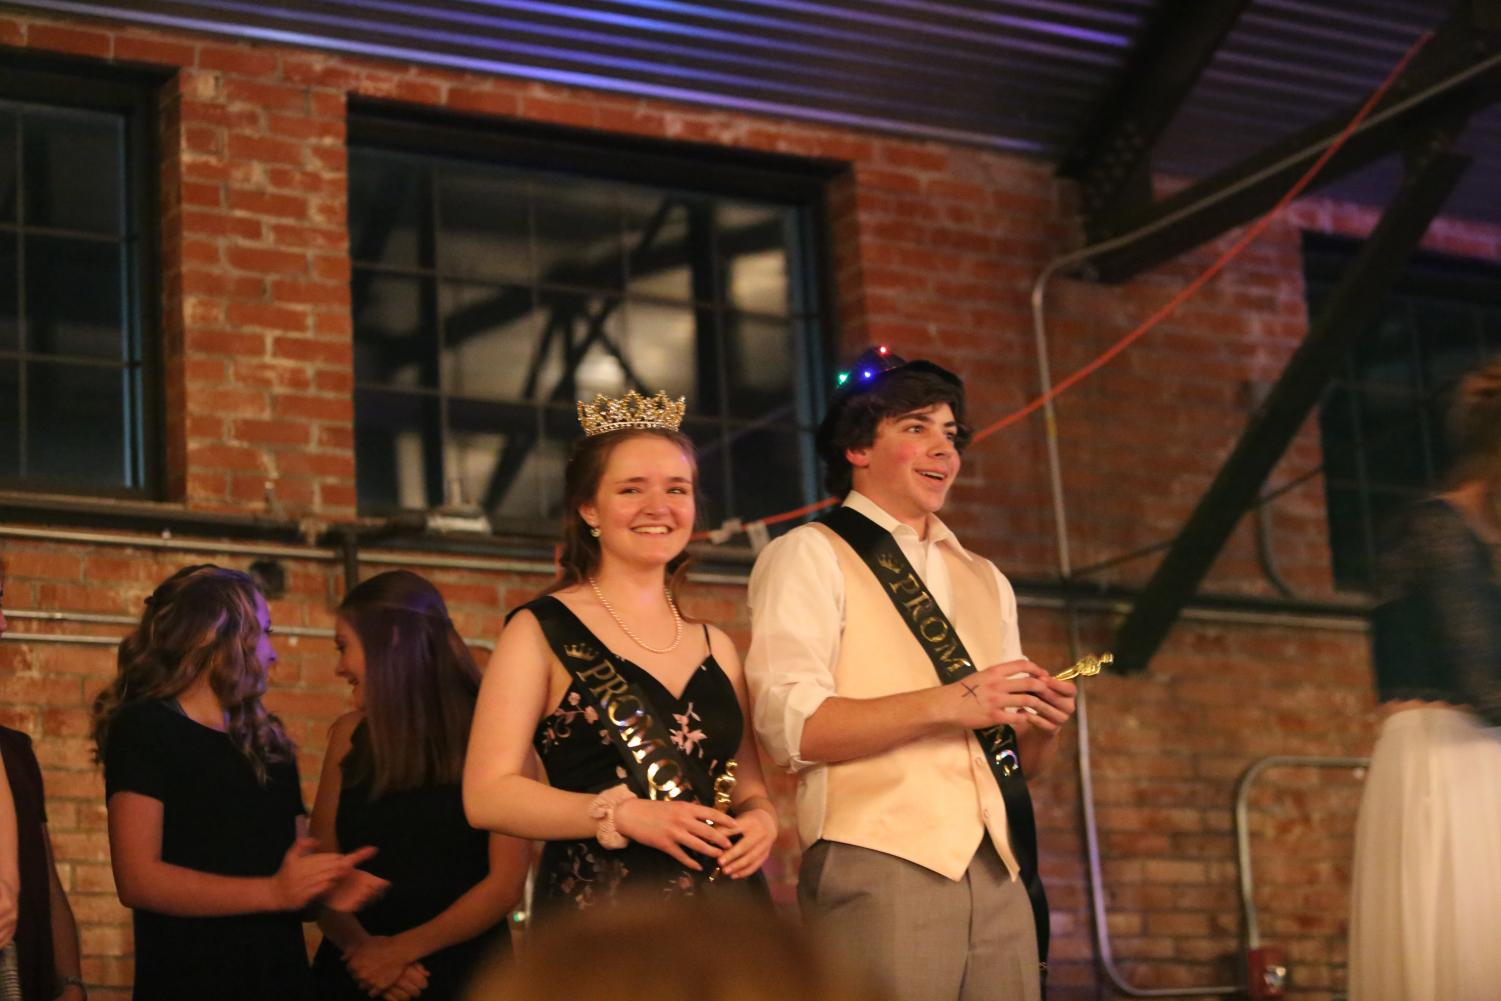 Enjoying their victories: Julie Jarrard and Garret Clasen stand on stage right after being crowned prom king and queen. Both were very excited to receive these titles. The crowd was also excited for these two and cheers were heard all throughout the Hangar where NC Prom 2019 was held on April 6th.